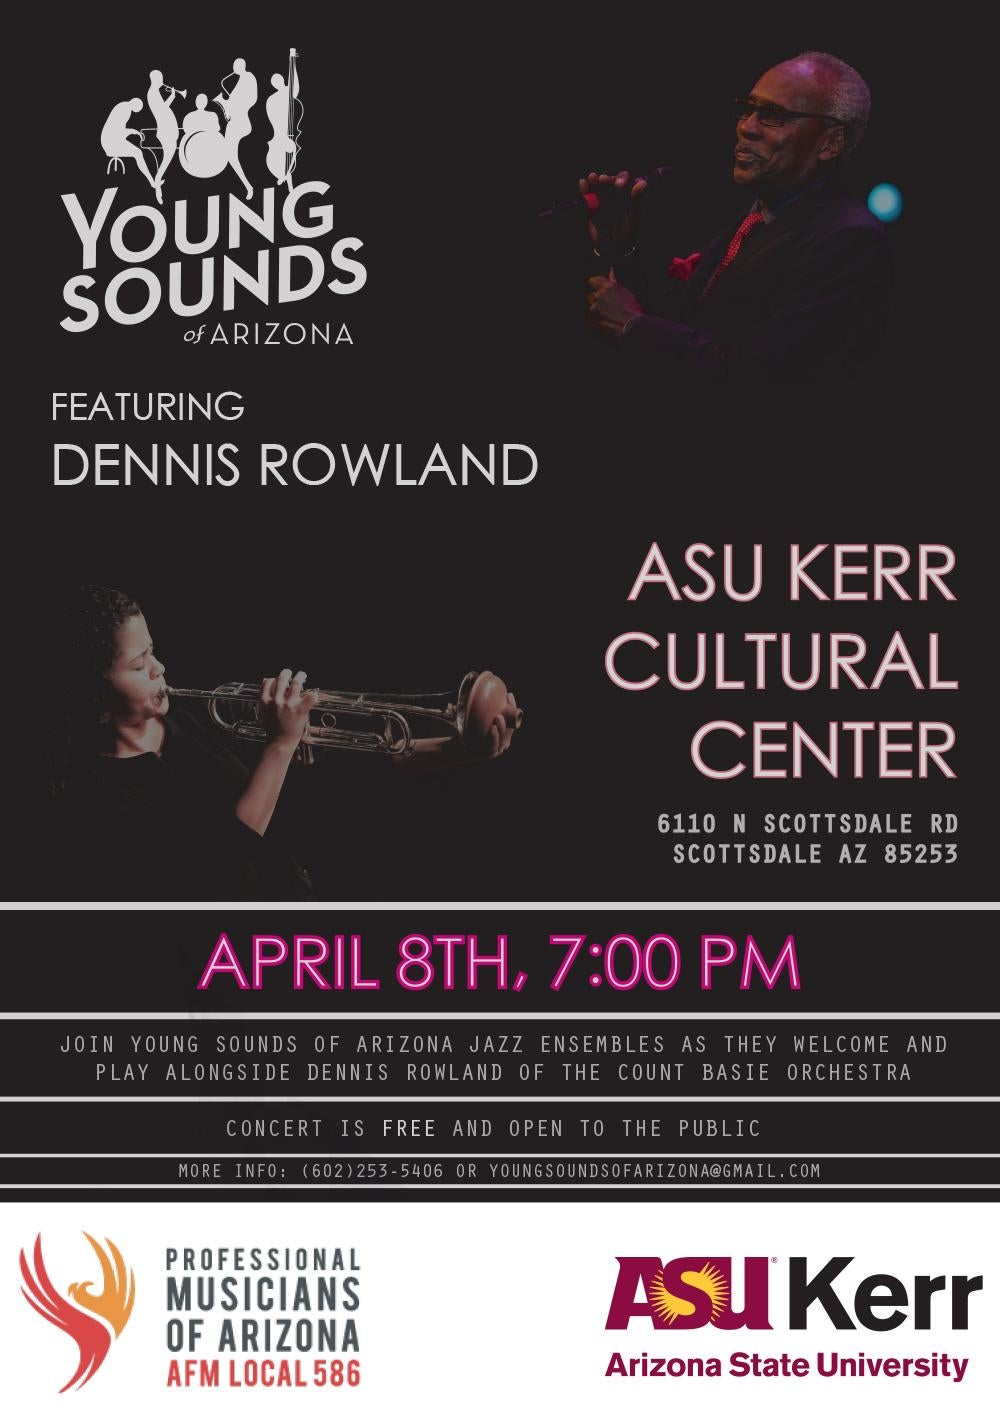 Young Sounds of Arizona featuring Dennis Rowland - Monday, April 8